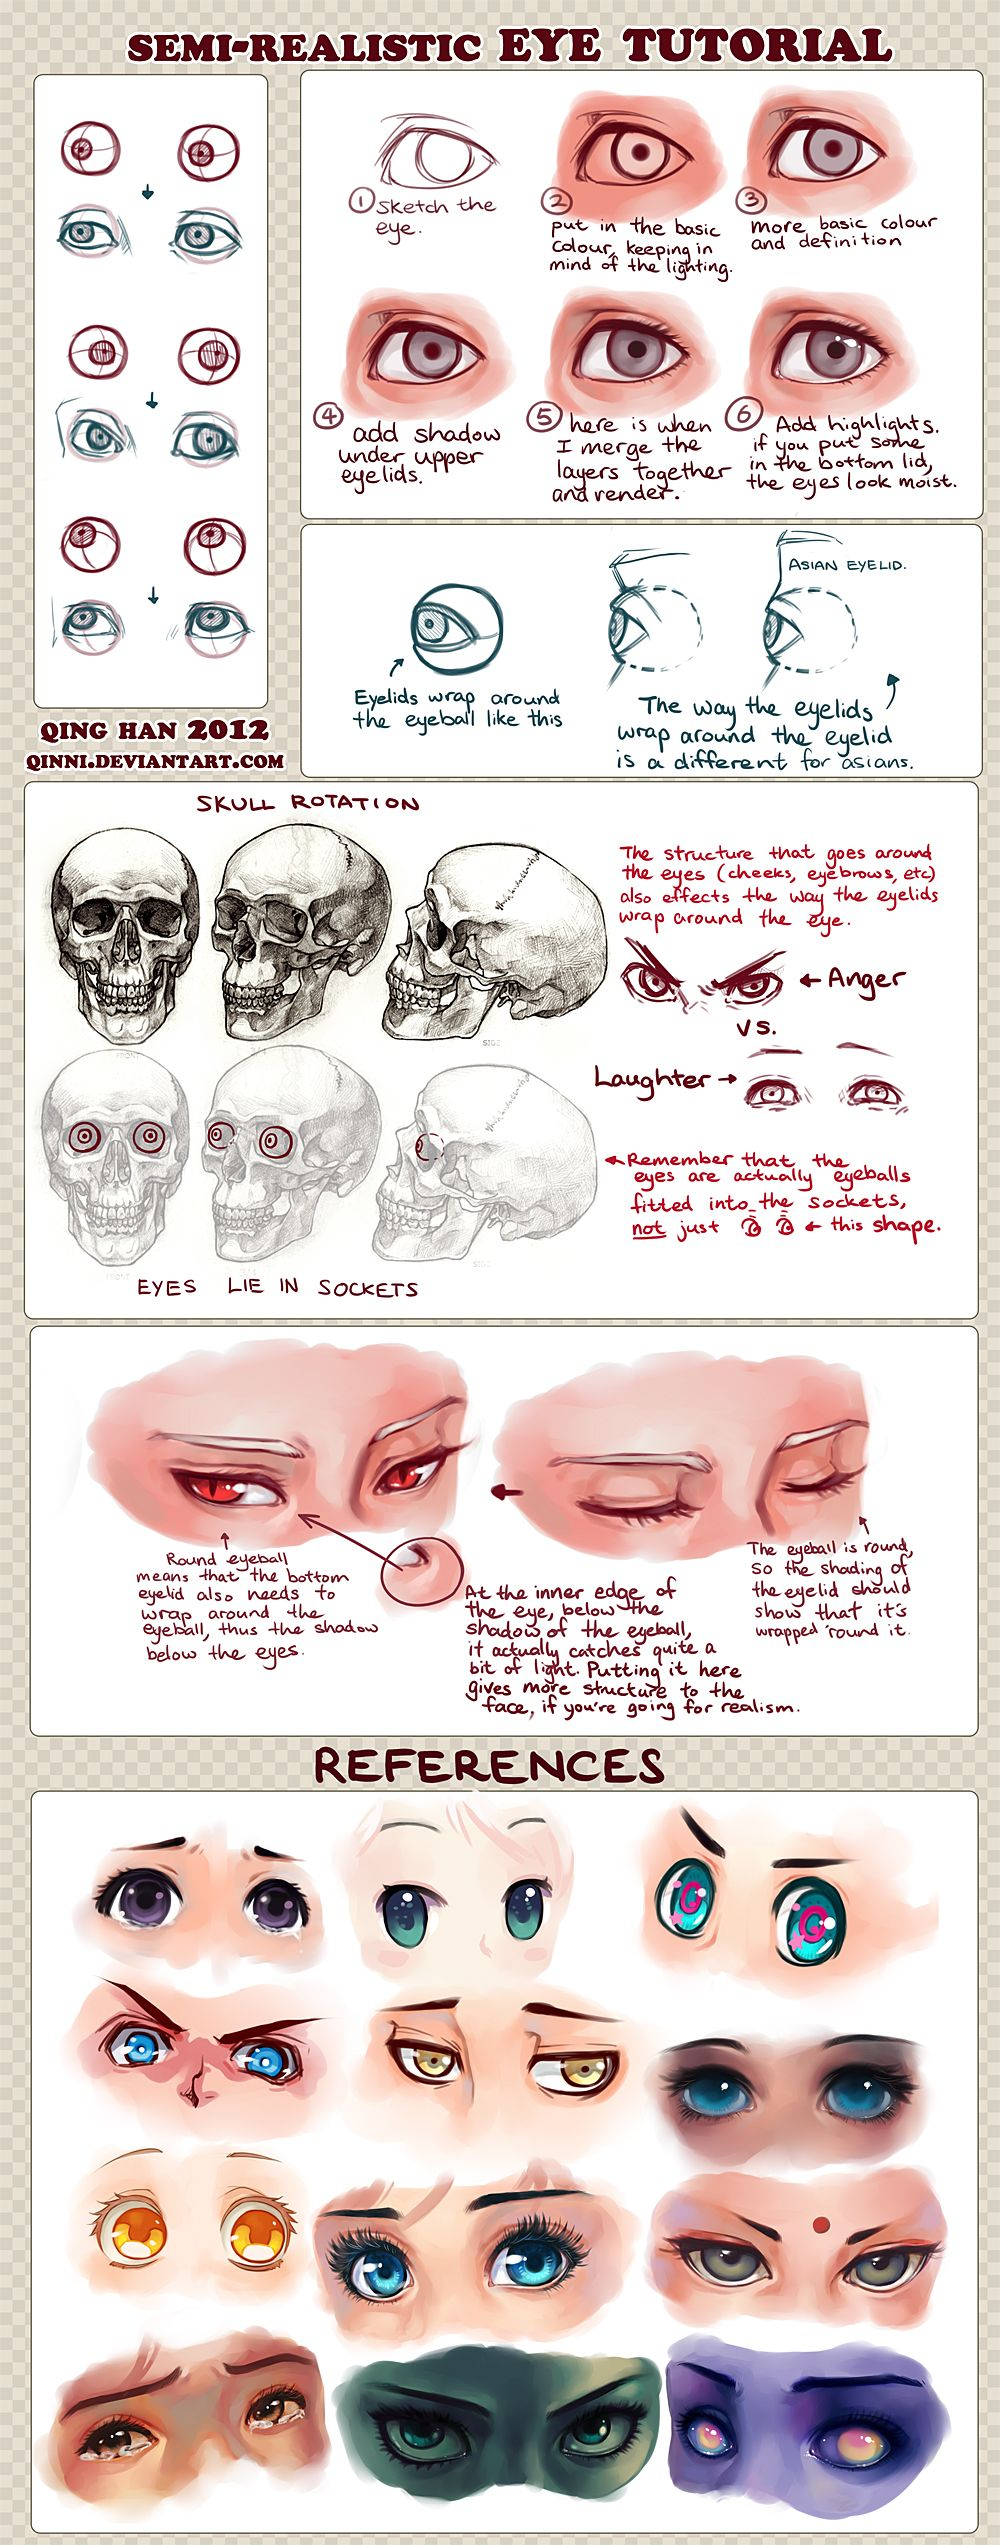 Semi Realistic Anime Eye Tutorial And References By Qinni On Deviantart Digital Painting Tutorials Eye Tutorial Realistic Eye Drawing